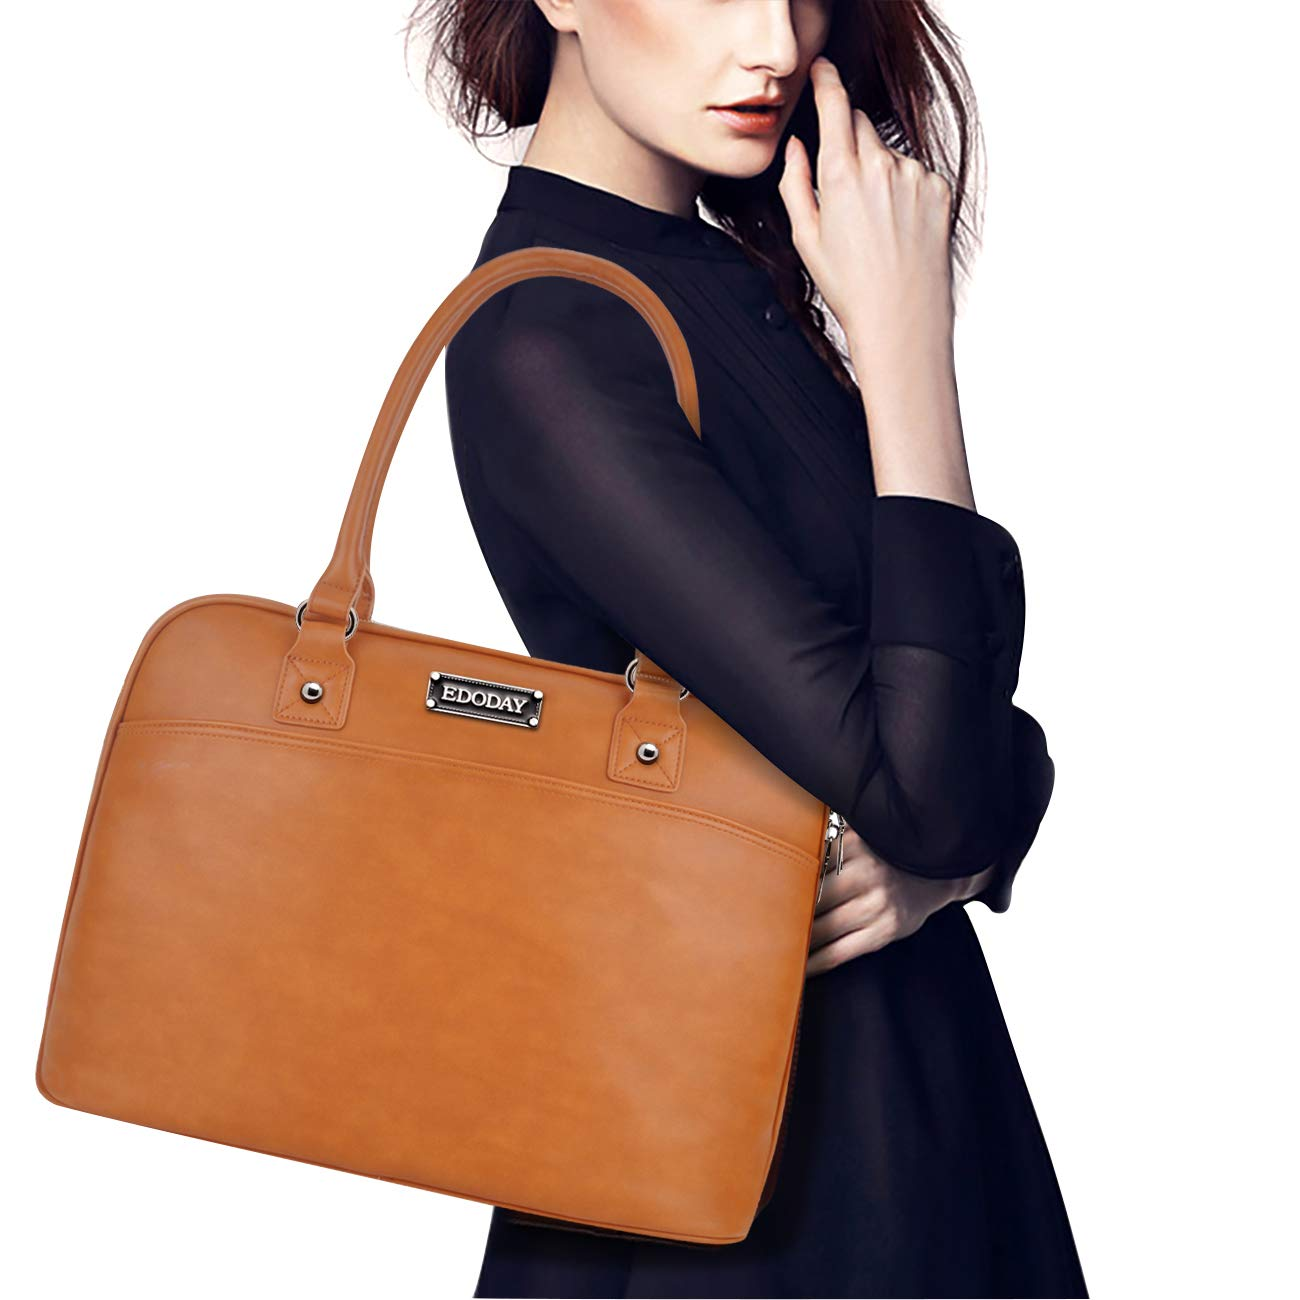 Laptop Tote Bag,15.6 Inch Laptop Bag for Women Classic Laptop Case Work Bags for Women,Brown by EDODAY